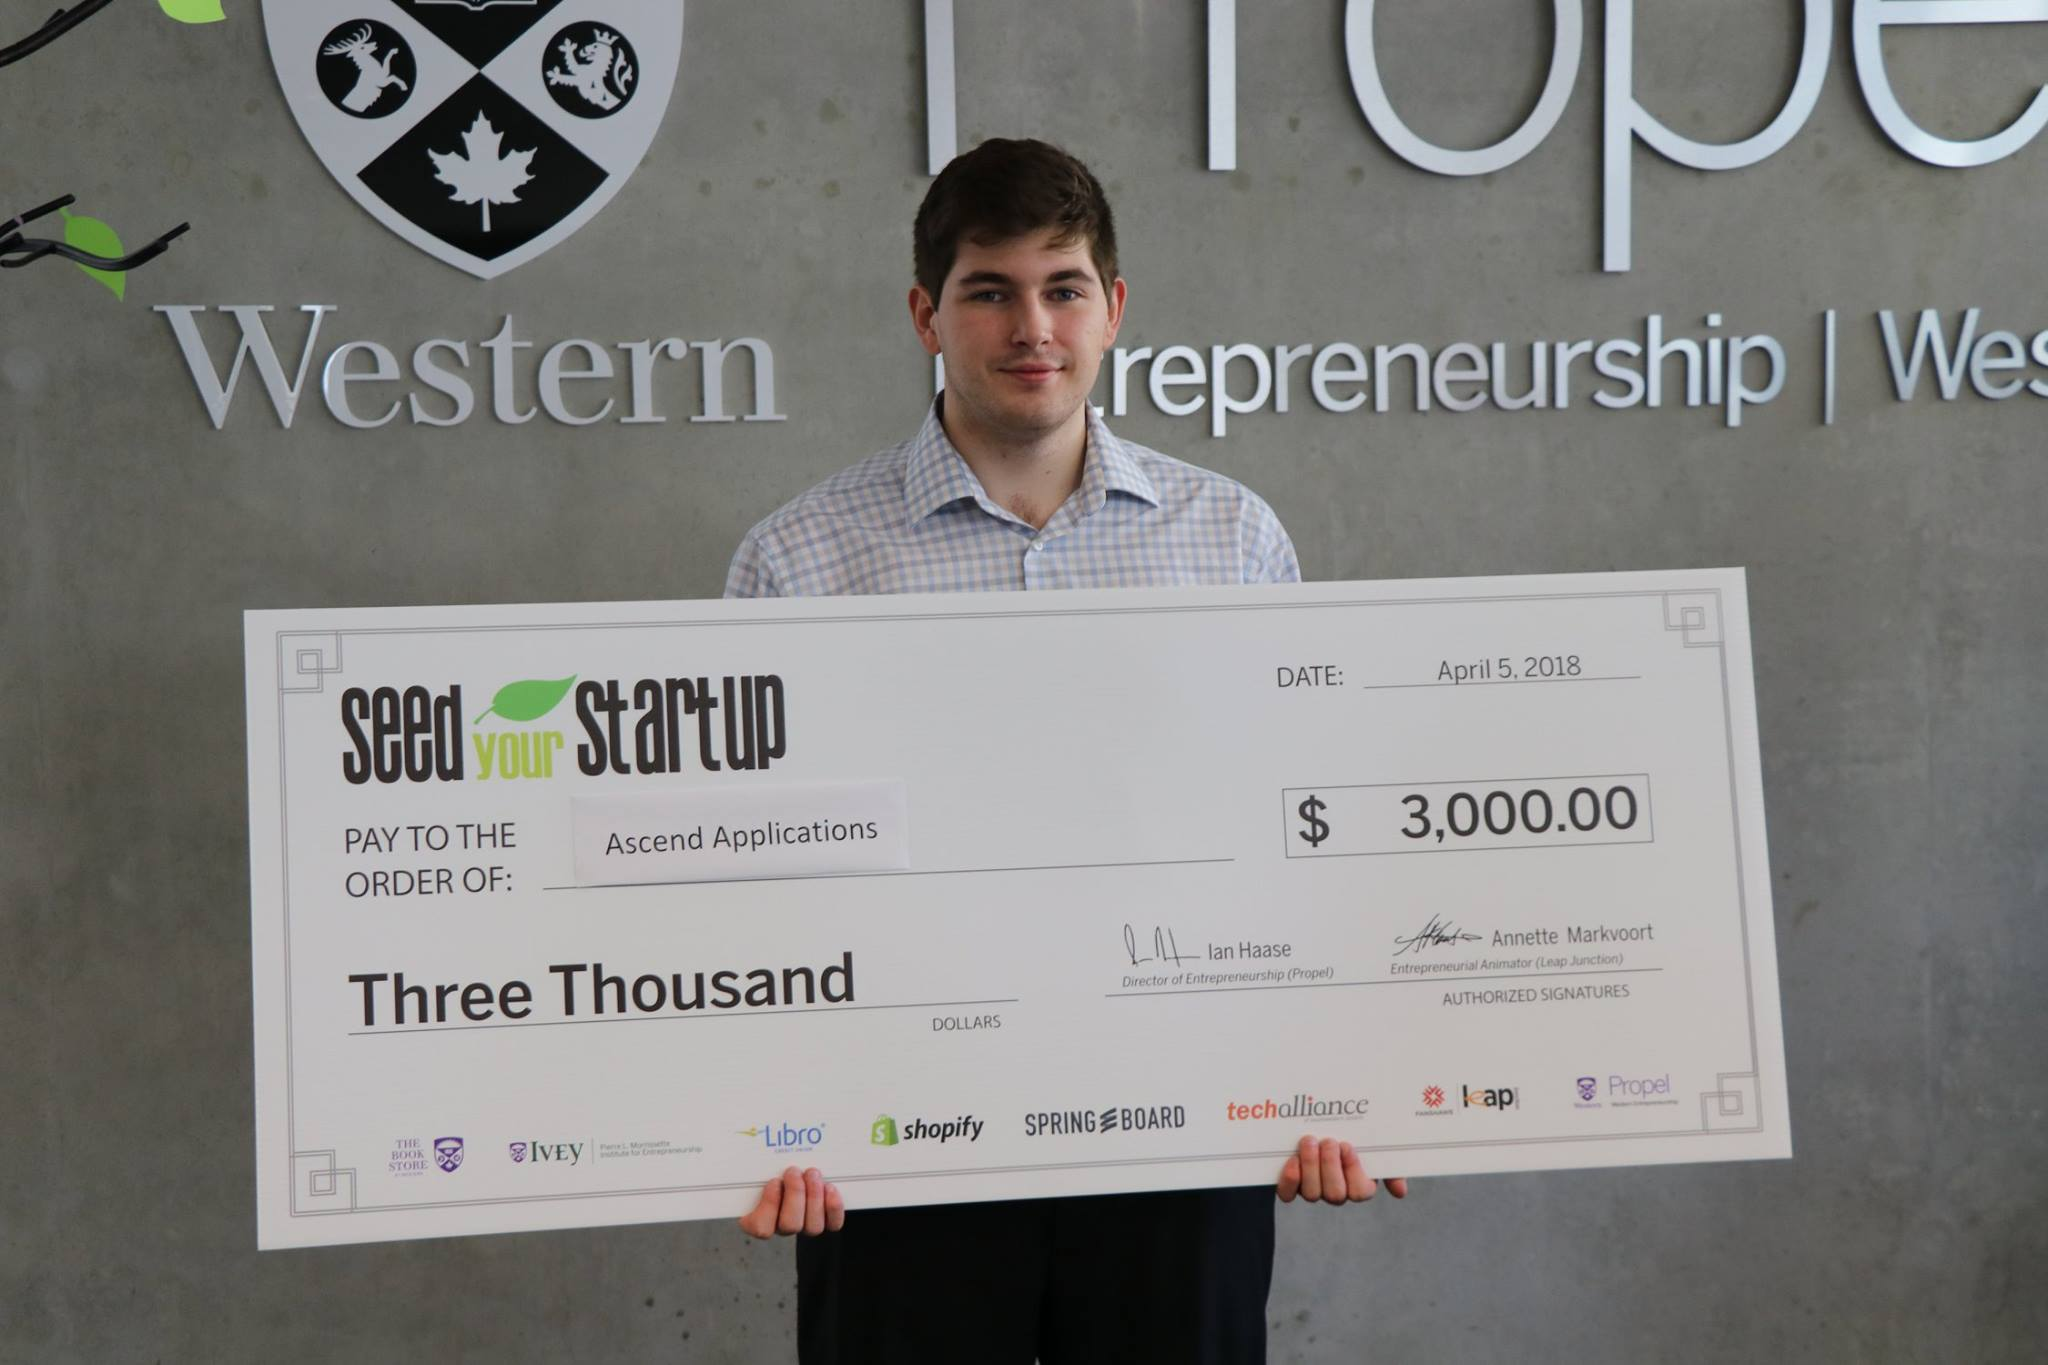 Fanshawe Programing Student Wins at Seed Your Startup Pitch Competition